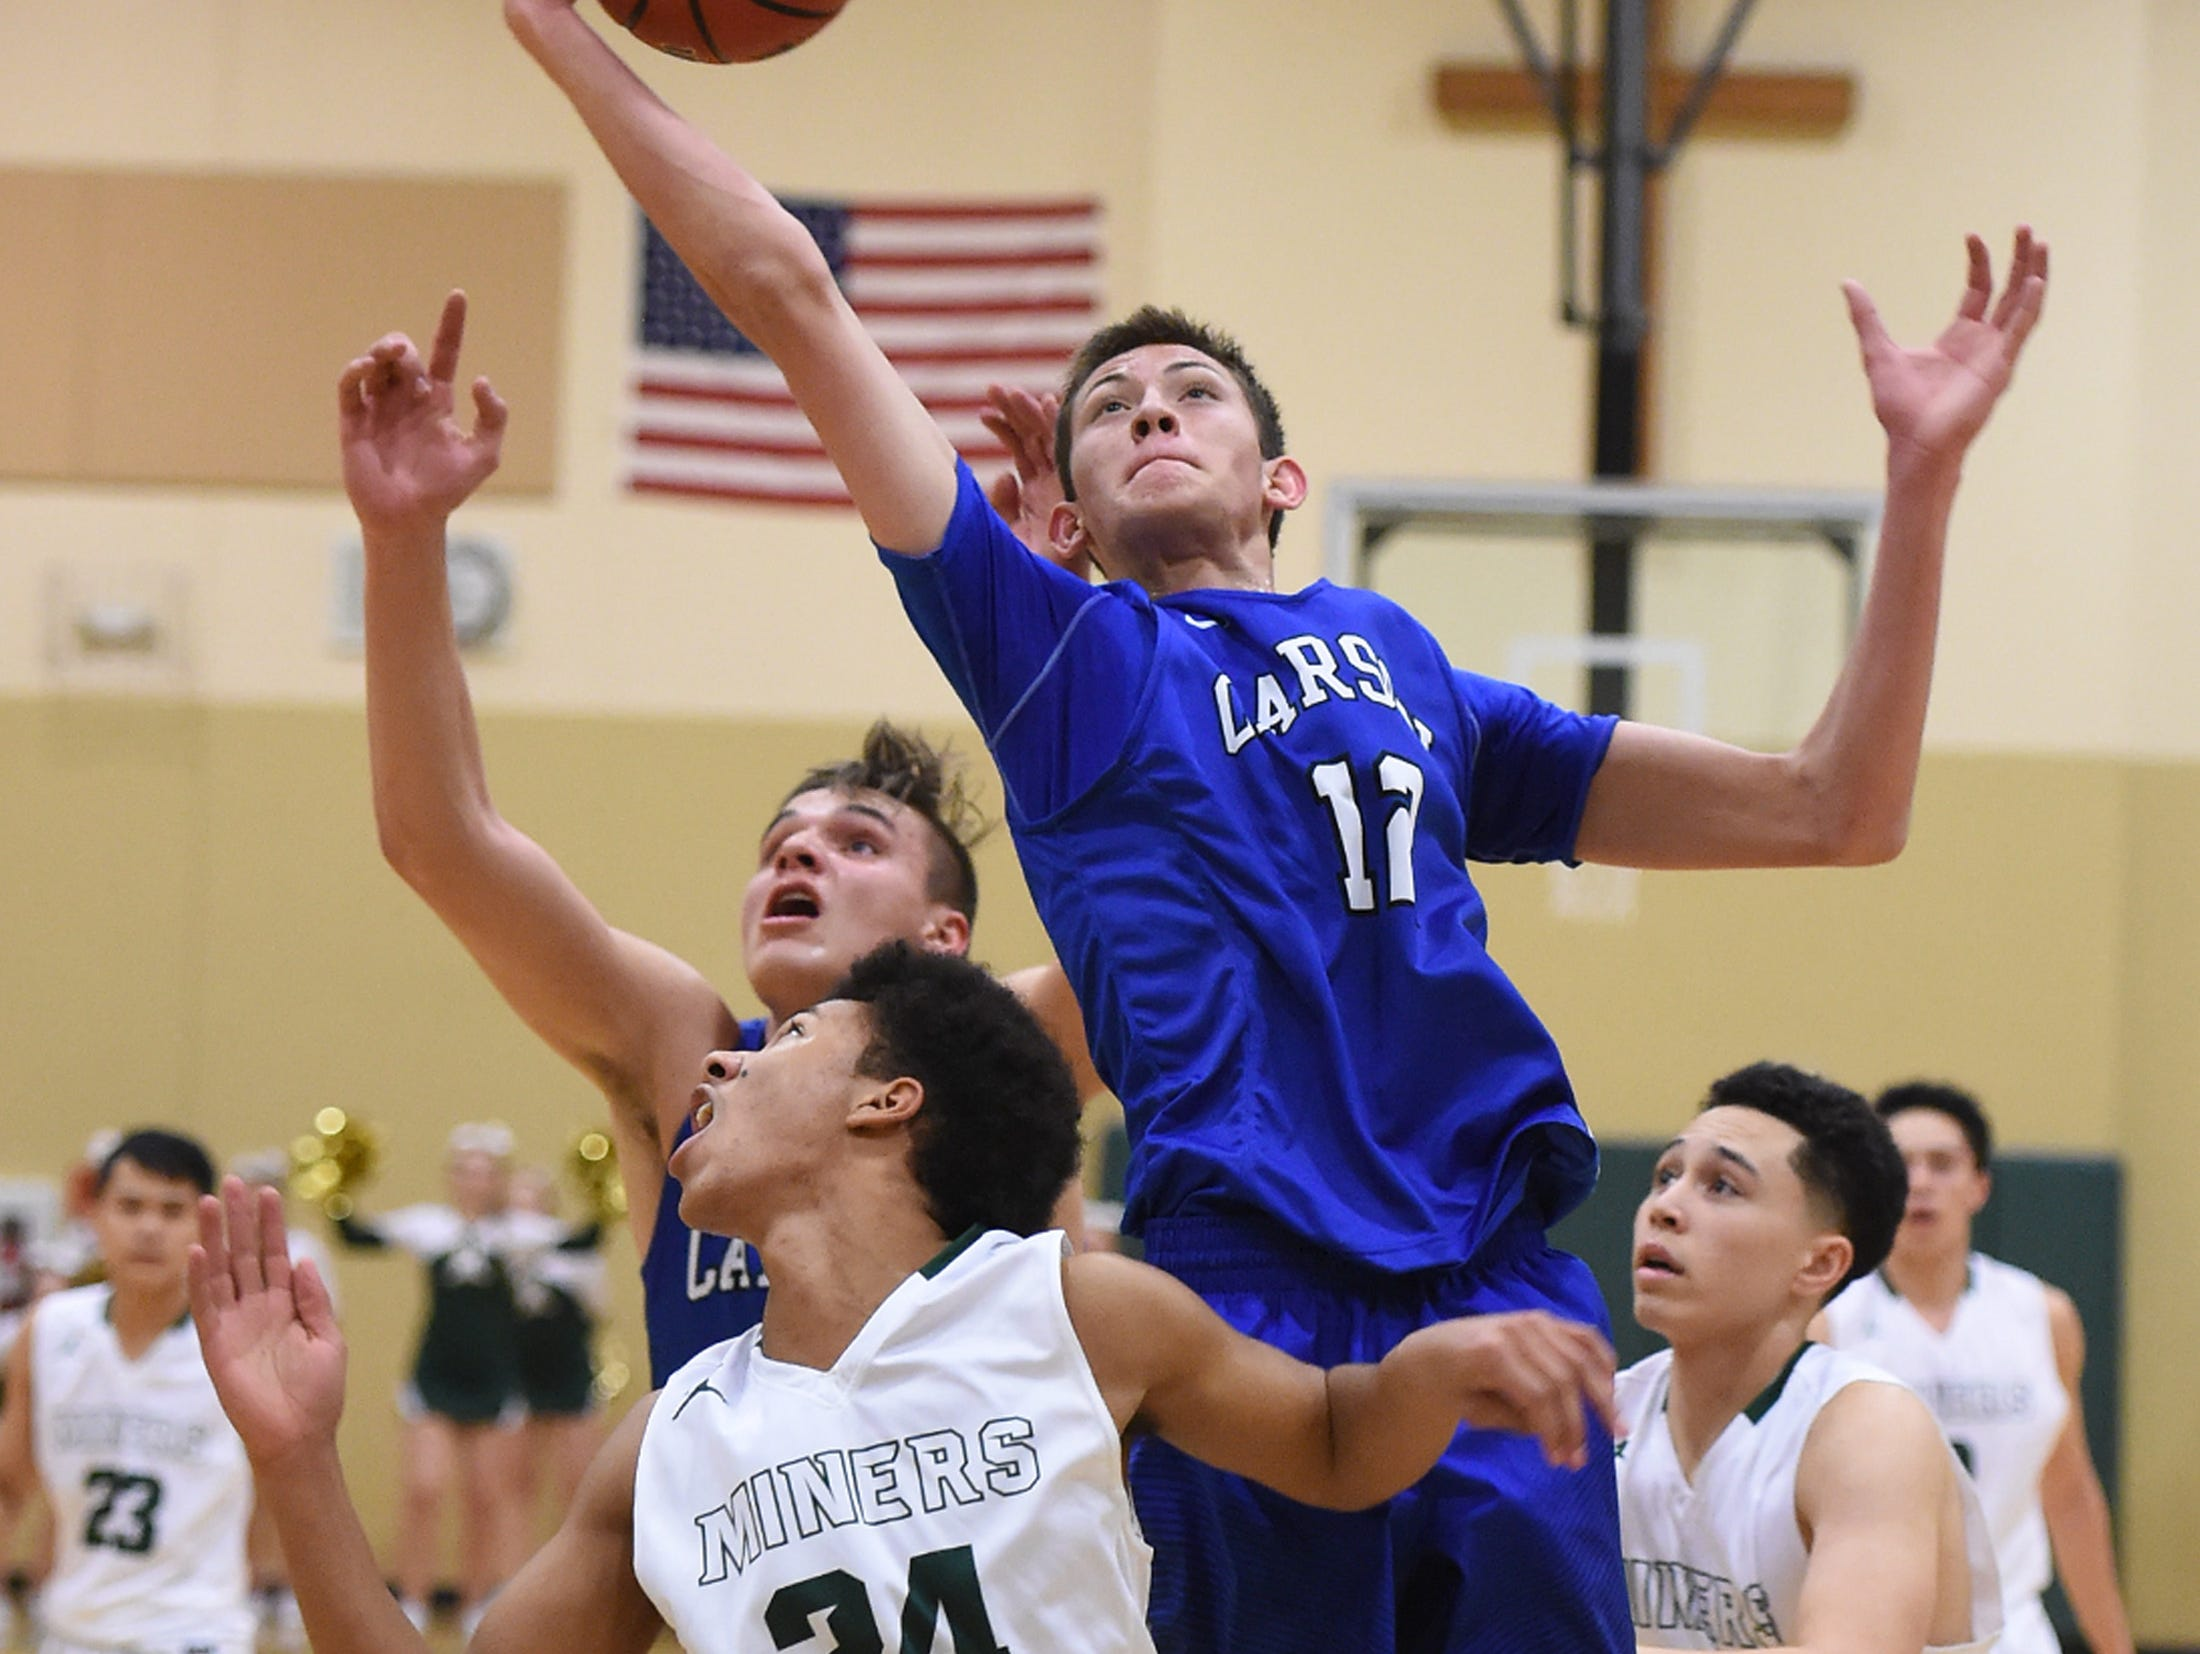 Carson's Trenten Robison reaches to grab a rebound from between Manogue's Josh Rolling, front and Dan Bansuelo, right during the first half of Tuesday's game at Bishop Manogue. Robison's teammate Jayden DeJoseph, behind him, backs him up.